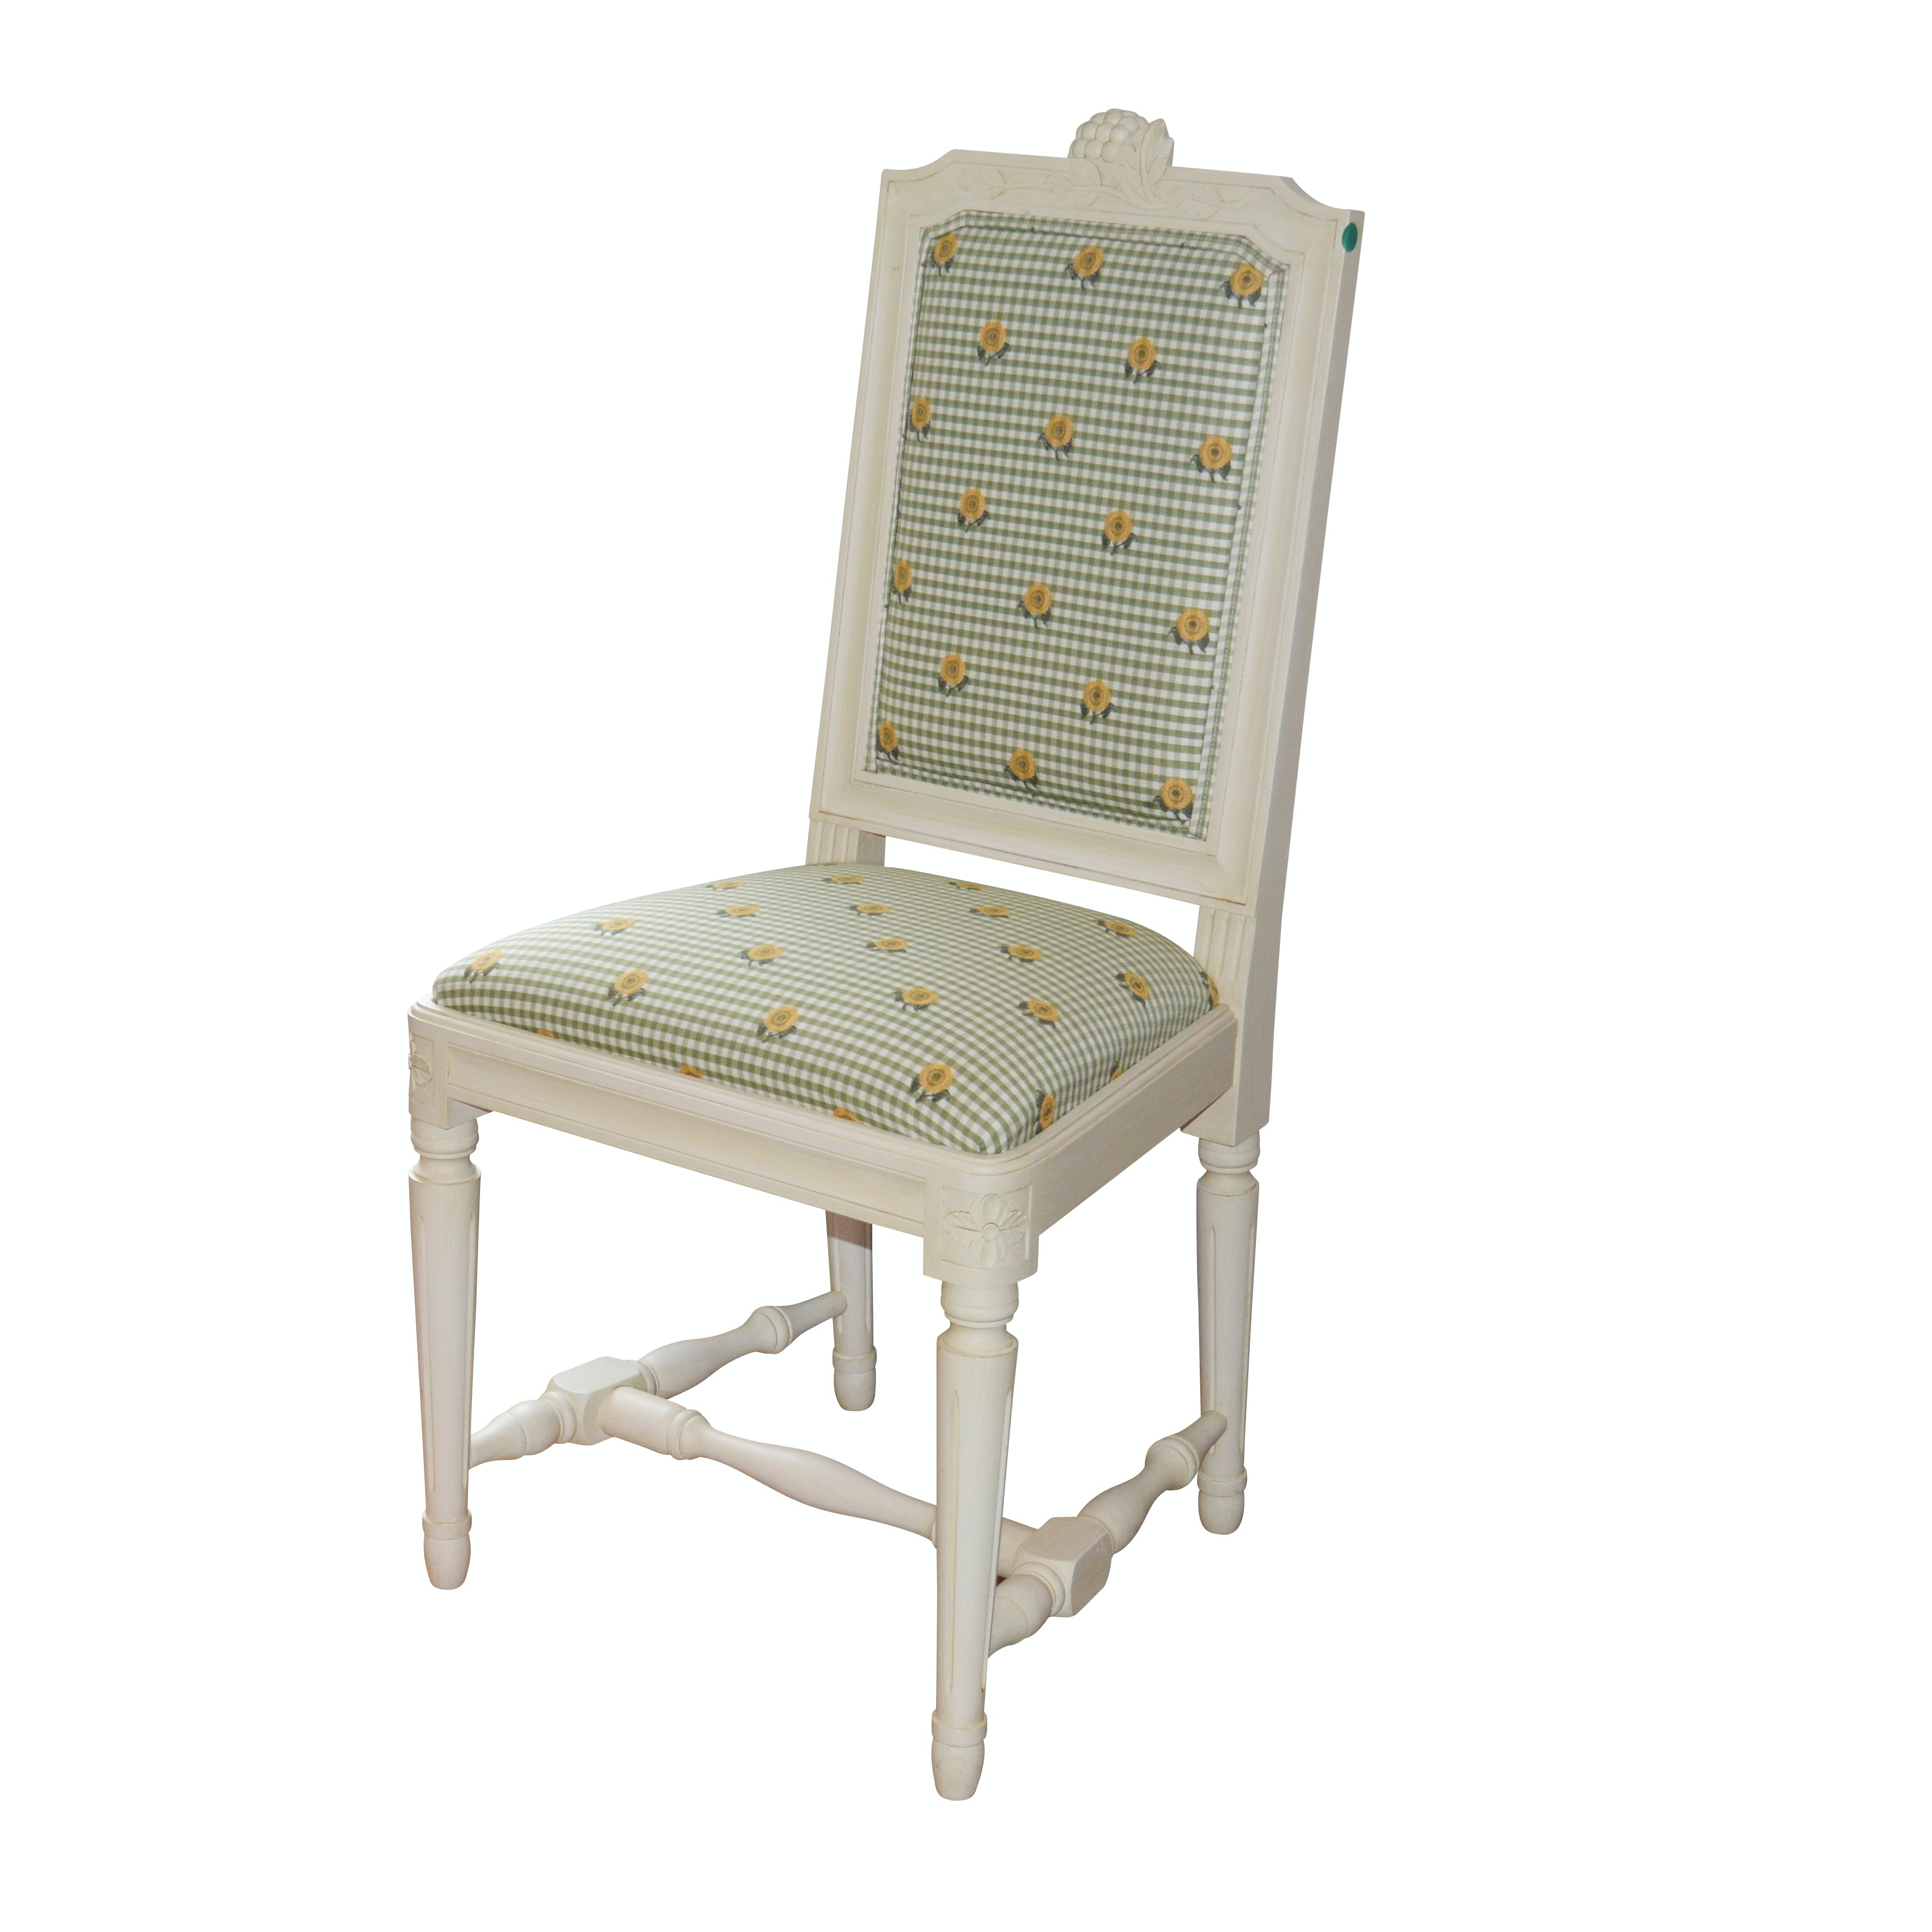 Green Checkered Upholstered Painted Side Chair, Early 20th Century